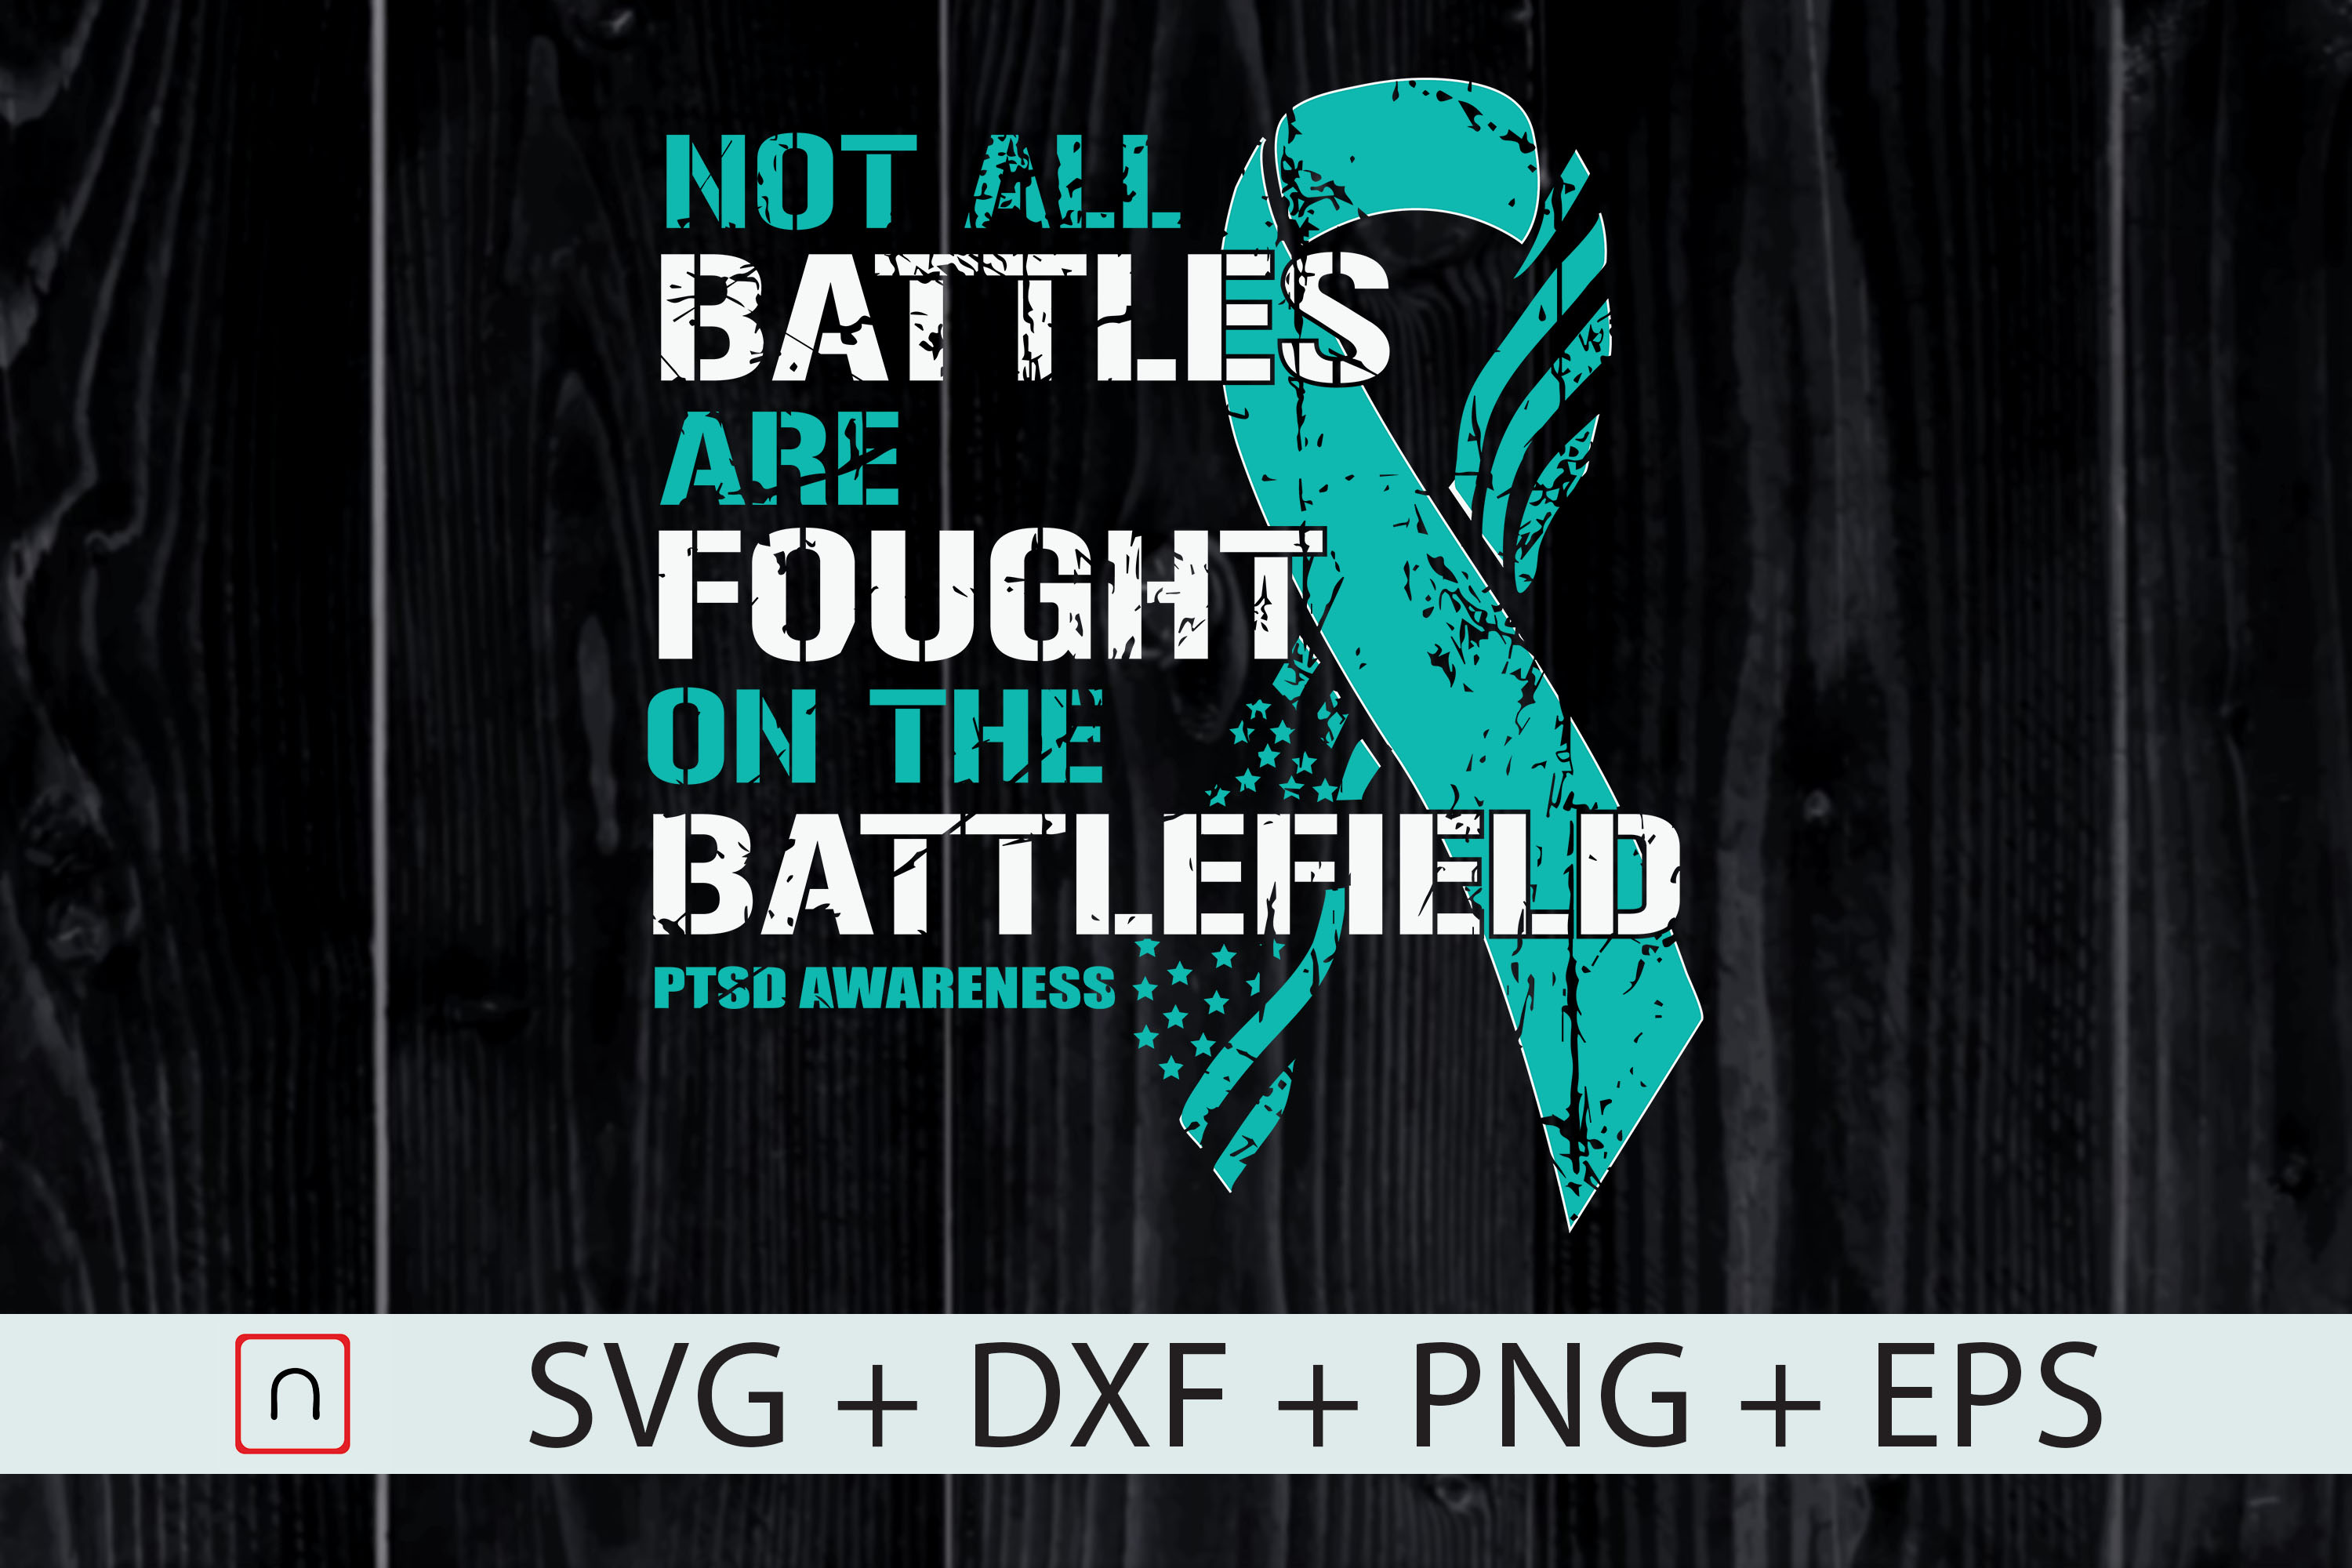 Download Free Not All Battles Fought Battlefield Ptsd Graphic By Novalia for Cricut Explore, Silhouette and other cutting machines.